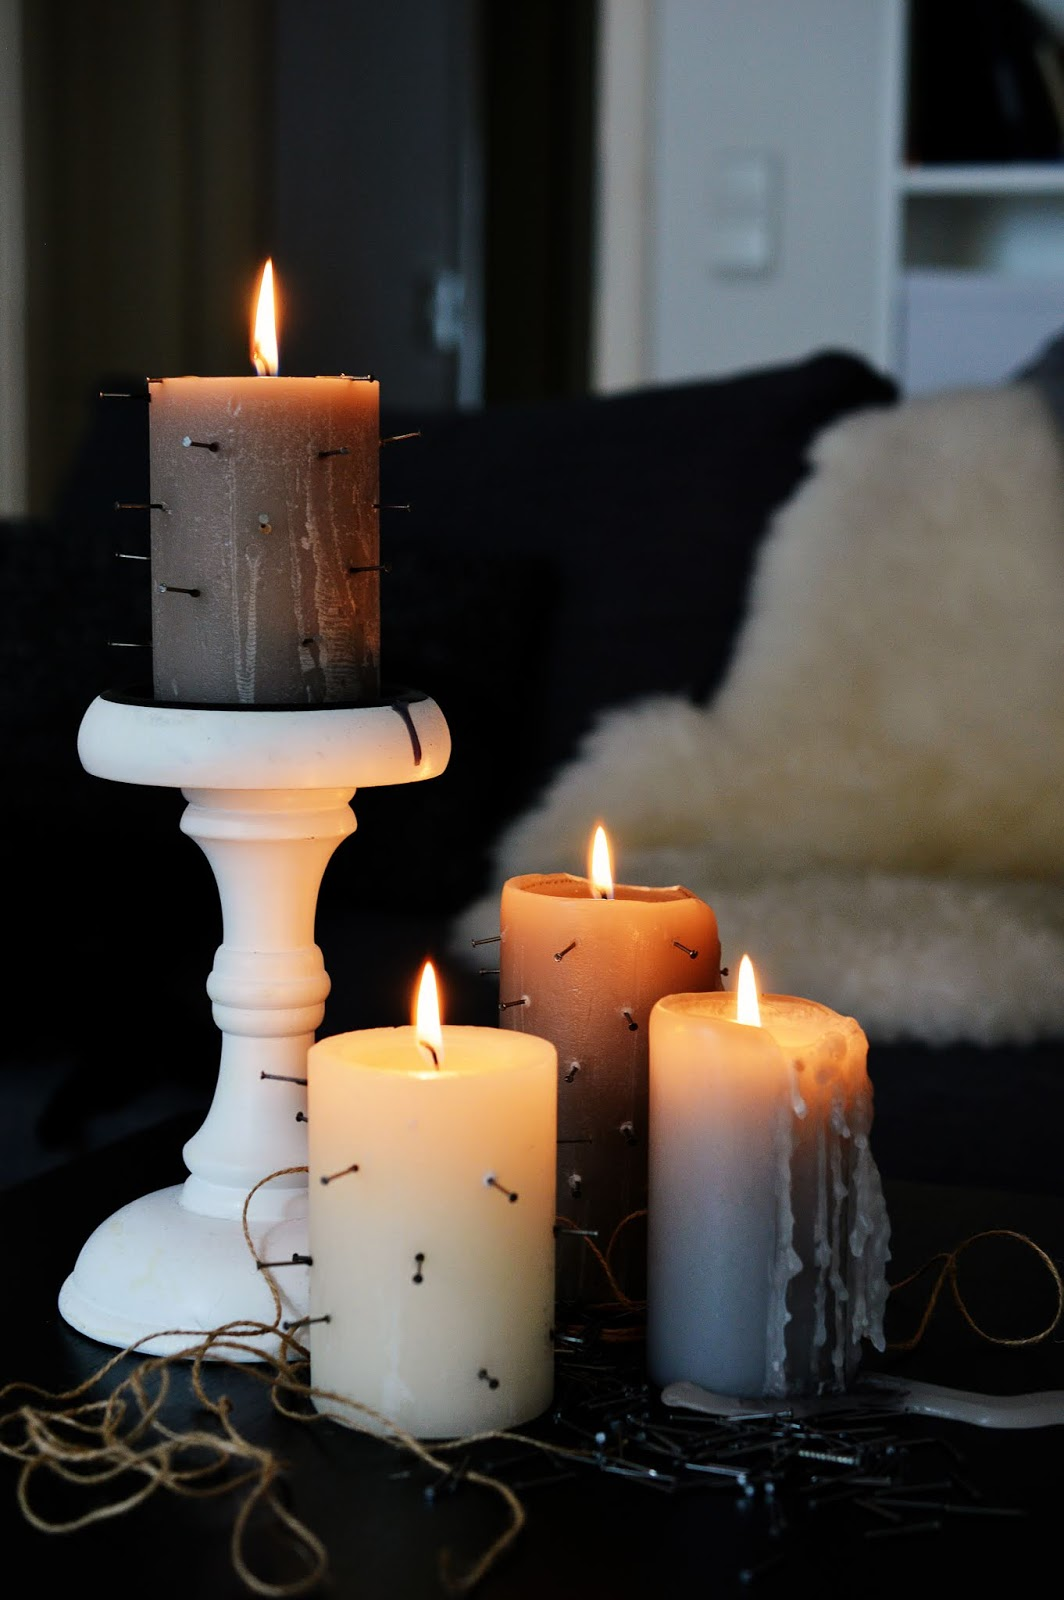 DIY tortured candles for Halloween